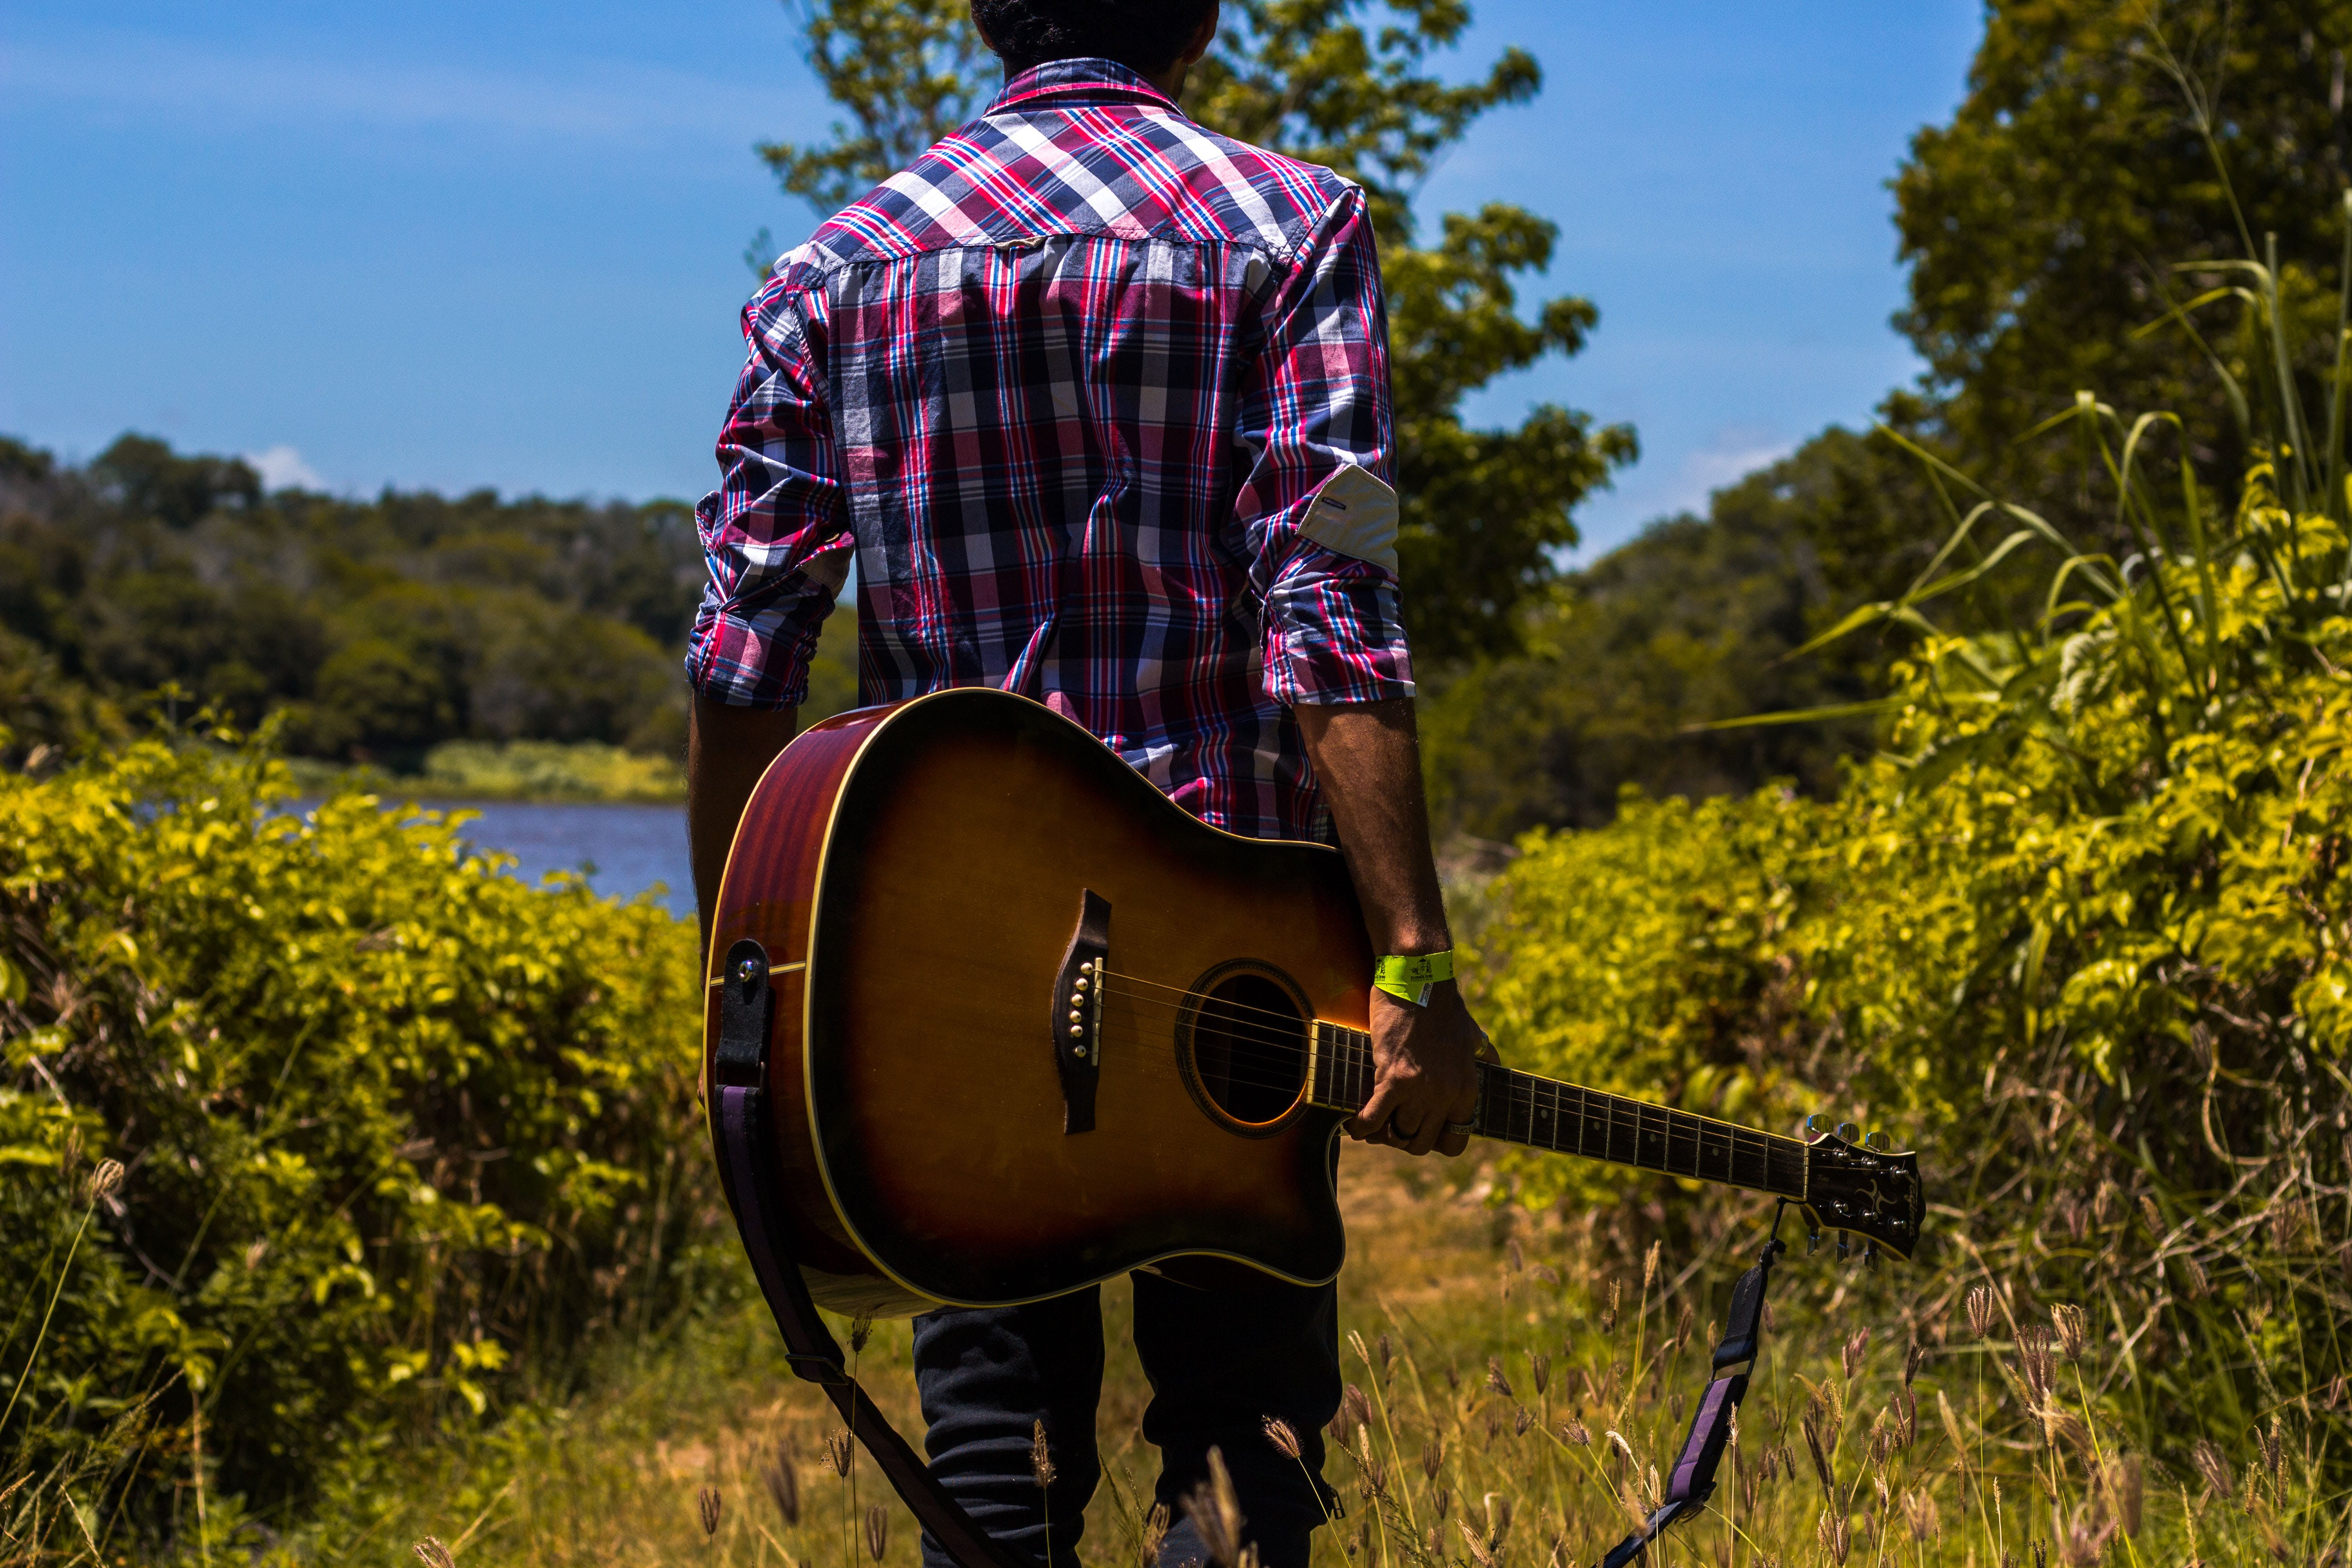 Man in Pink, Black, and White Plaid Dress Shirt Holding a Guitar Near Green Bush